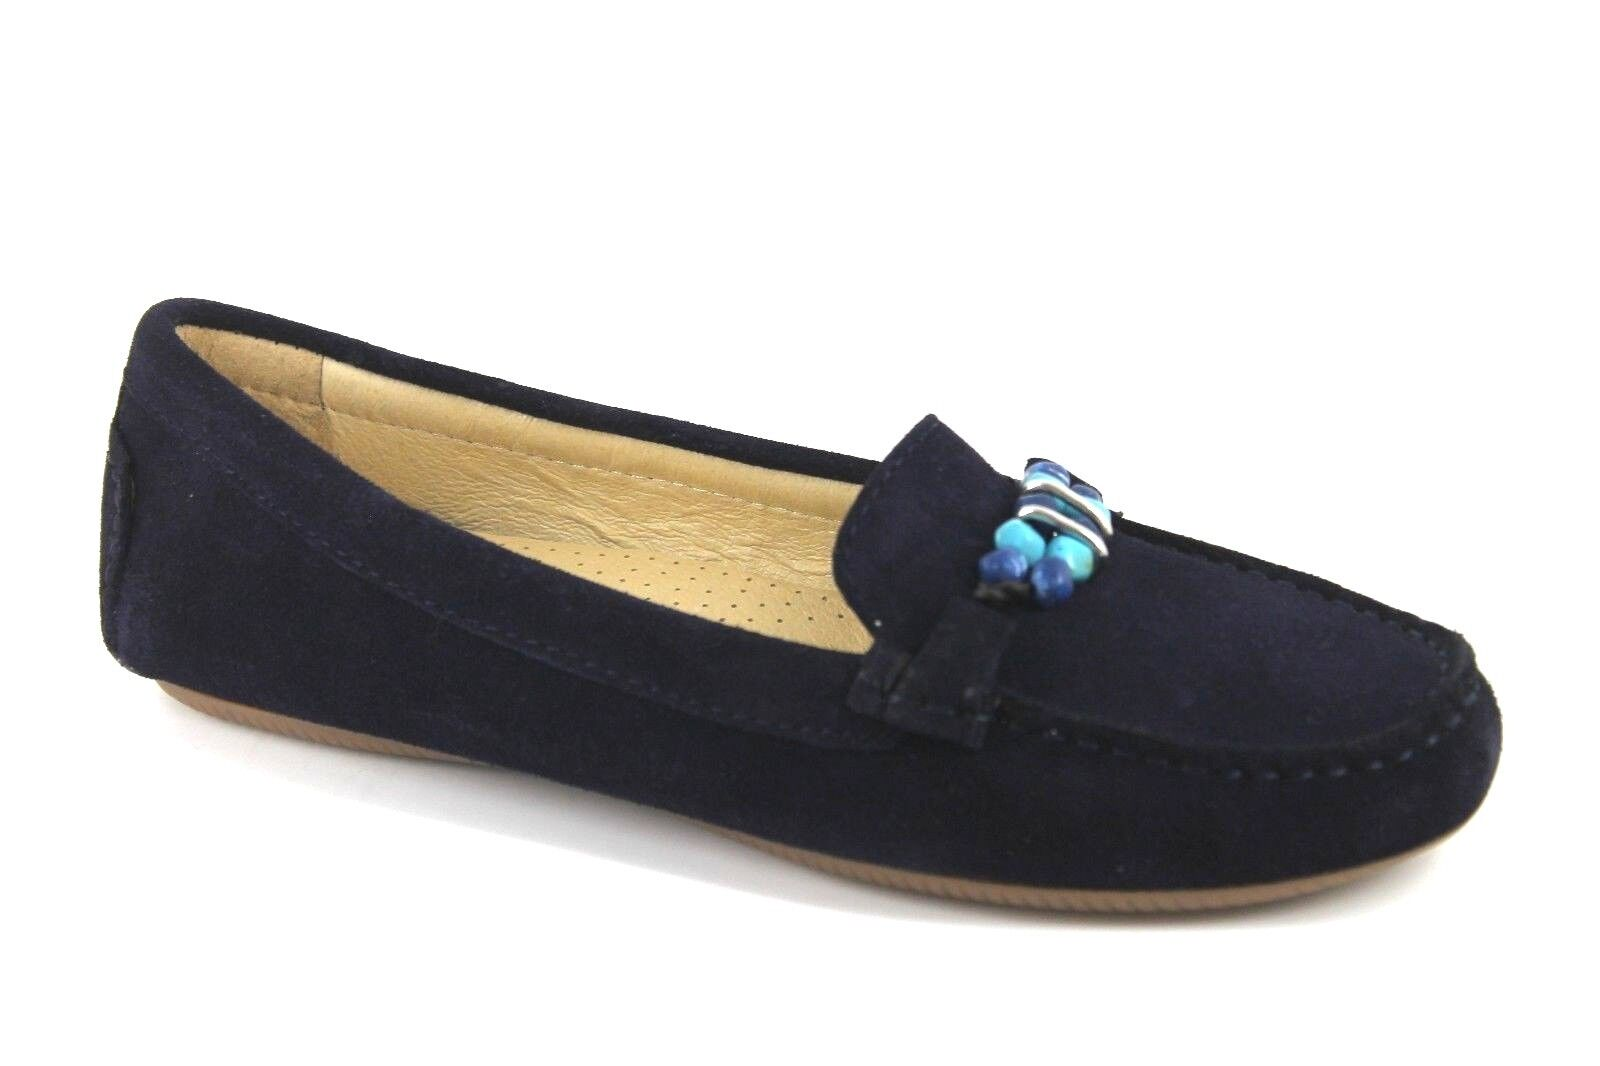 Artigiano Womens UK 7 EU 40 Navy bluee Suede Pearl Pearl Pearl Moccasin Slip On shoes Flats 2e9f50